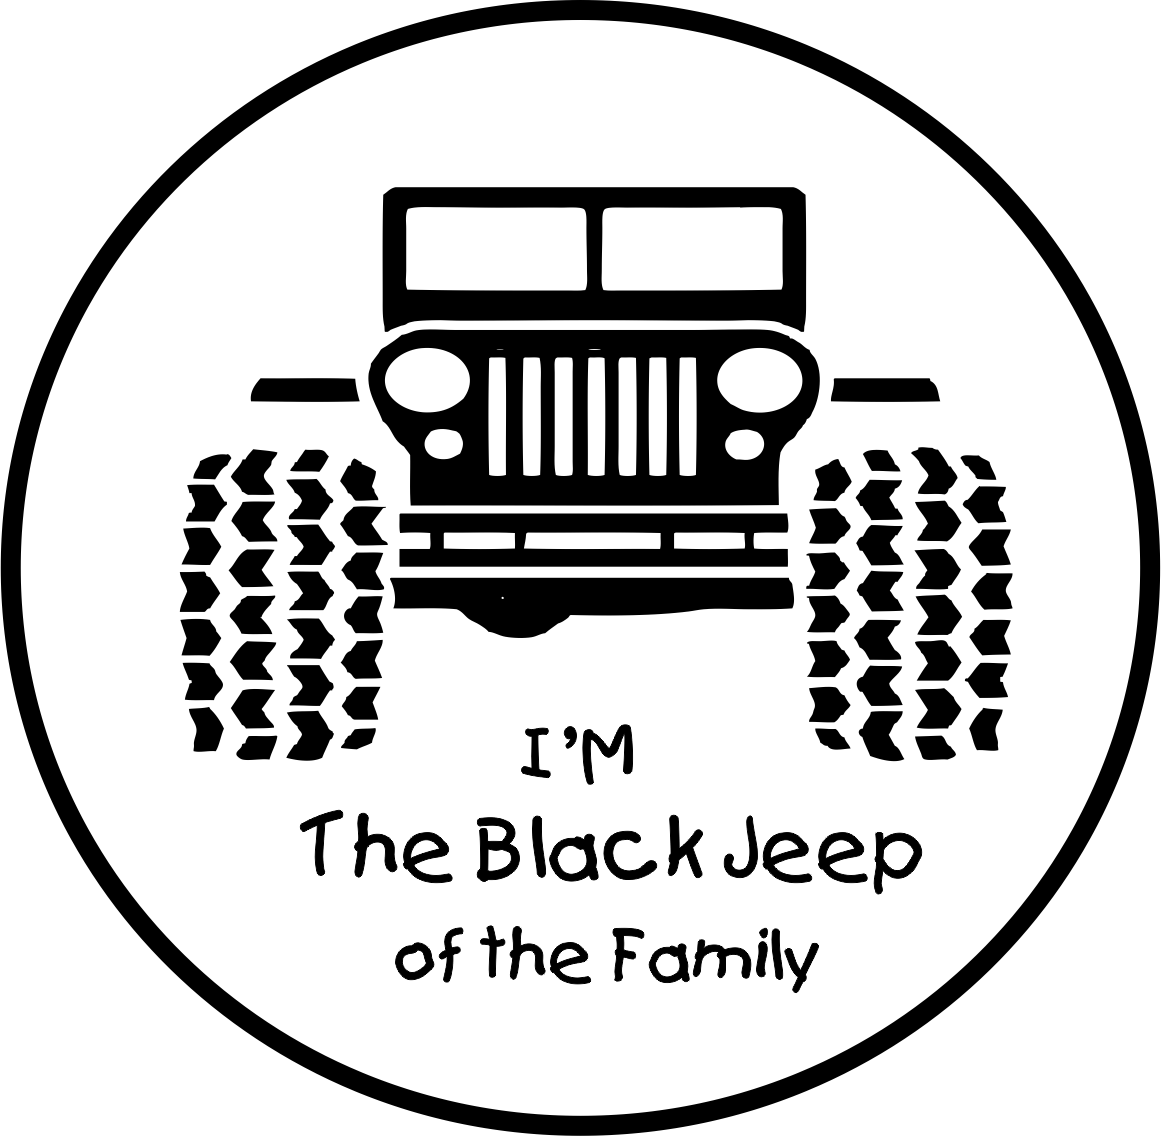 I M The Black Jeep Of The Family Jeep Black Jeep Jeep Stickers